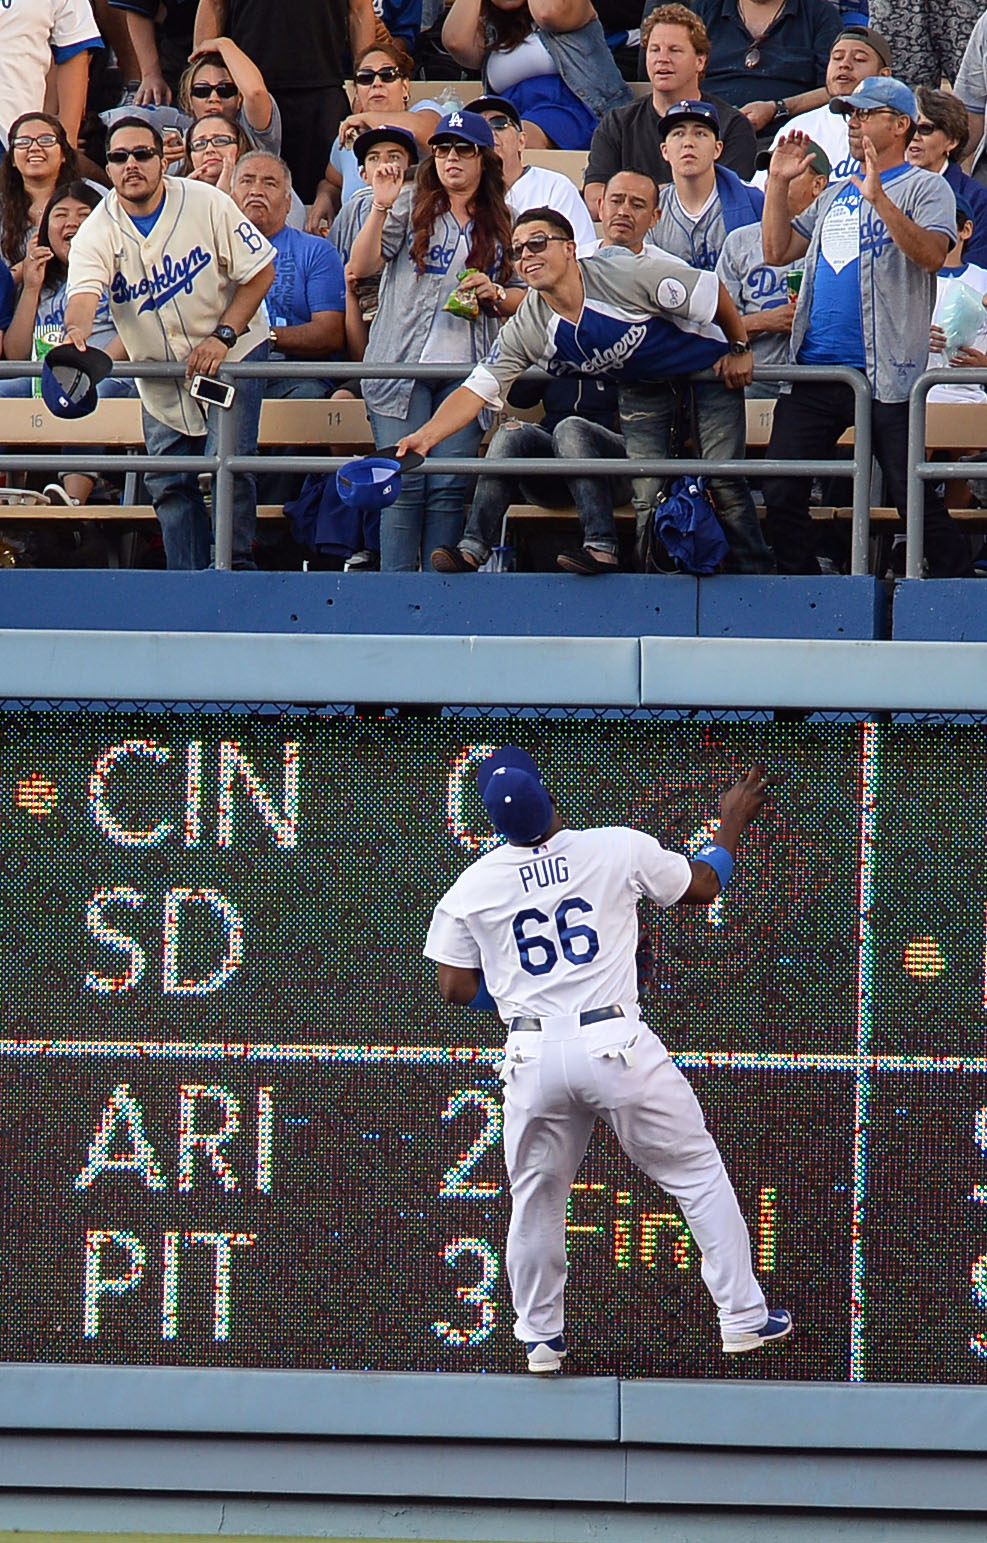 . Los Angeles Dodgers rightfielder Yasiel Puig watches a homerun fly over the wall against the Cleveland Indians July 1, 2014 in Los Angeles.(Andy Holzman/Los Angeles Daily News)